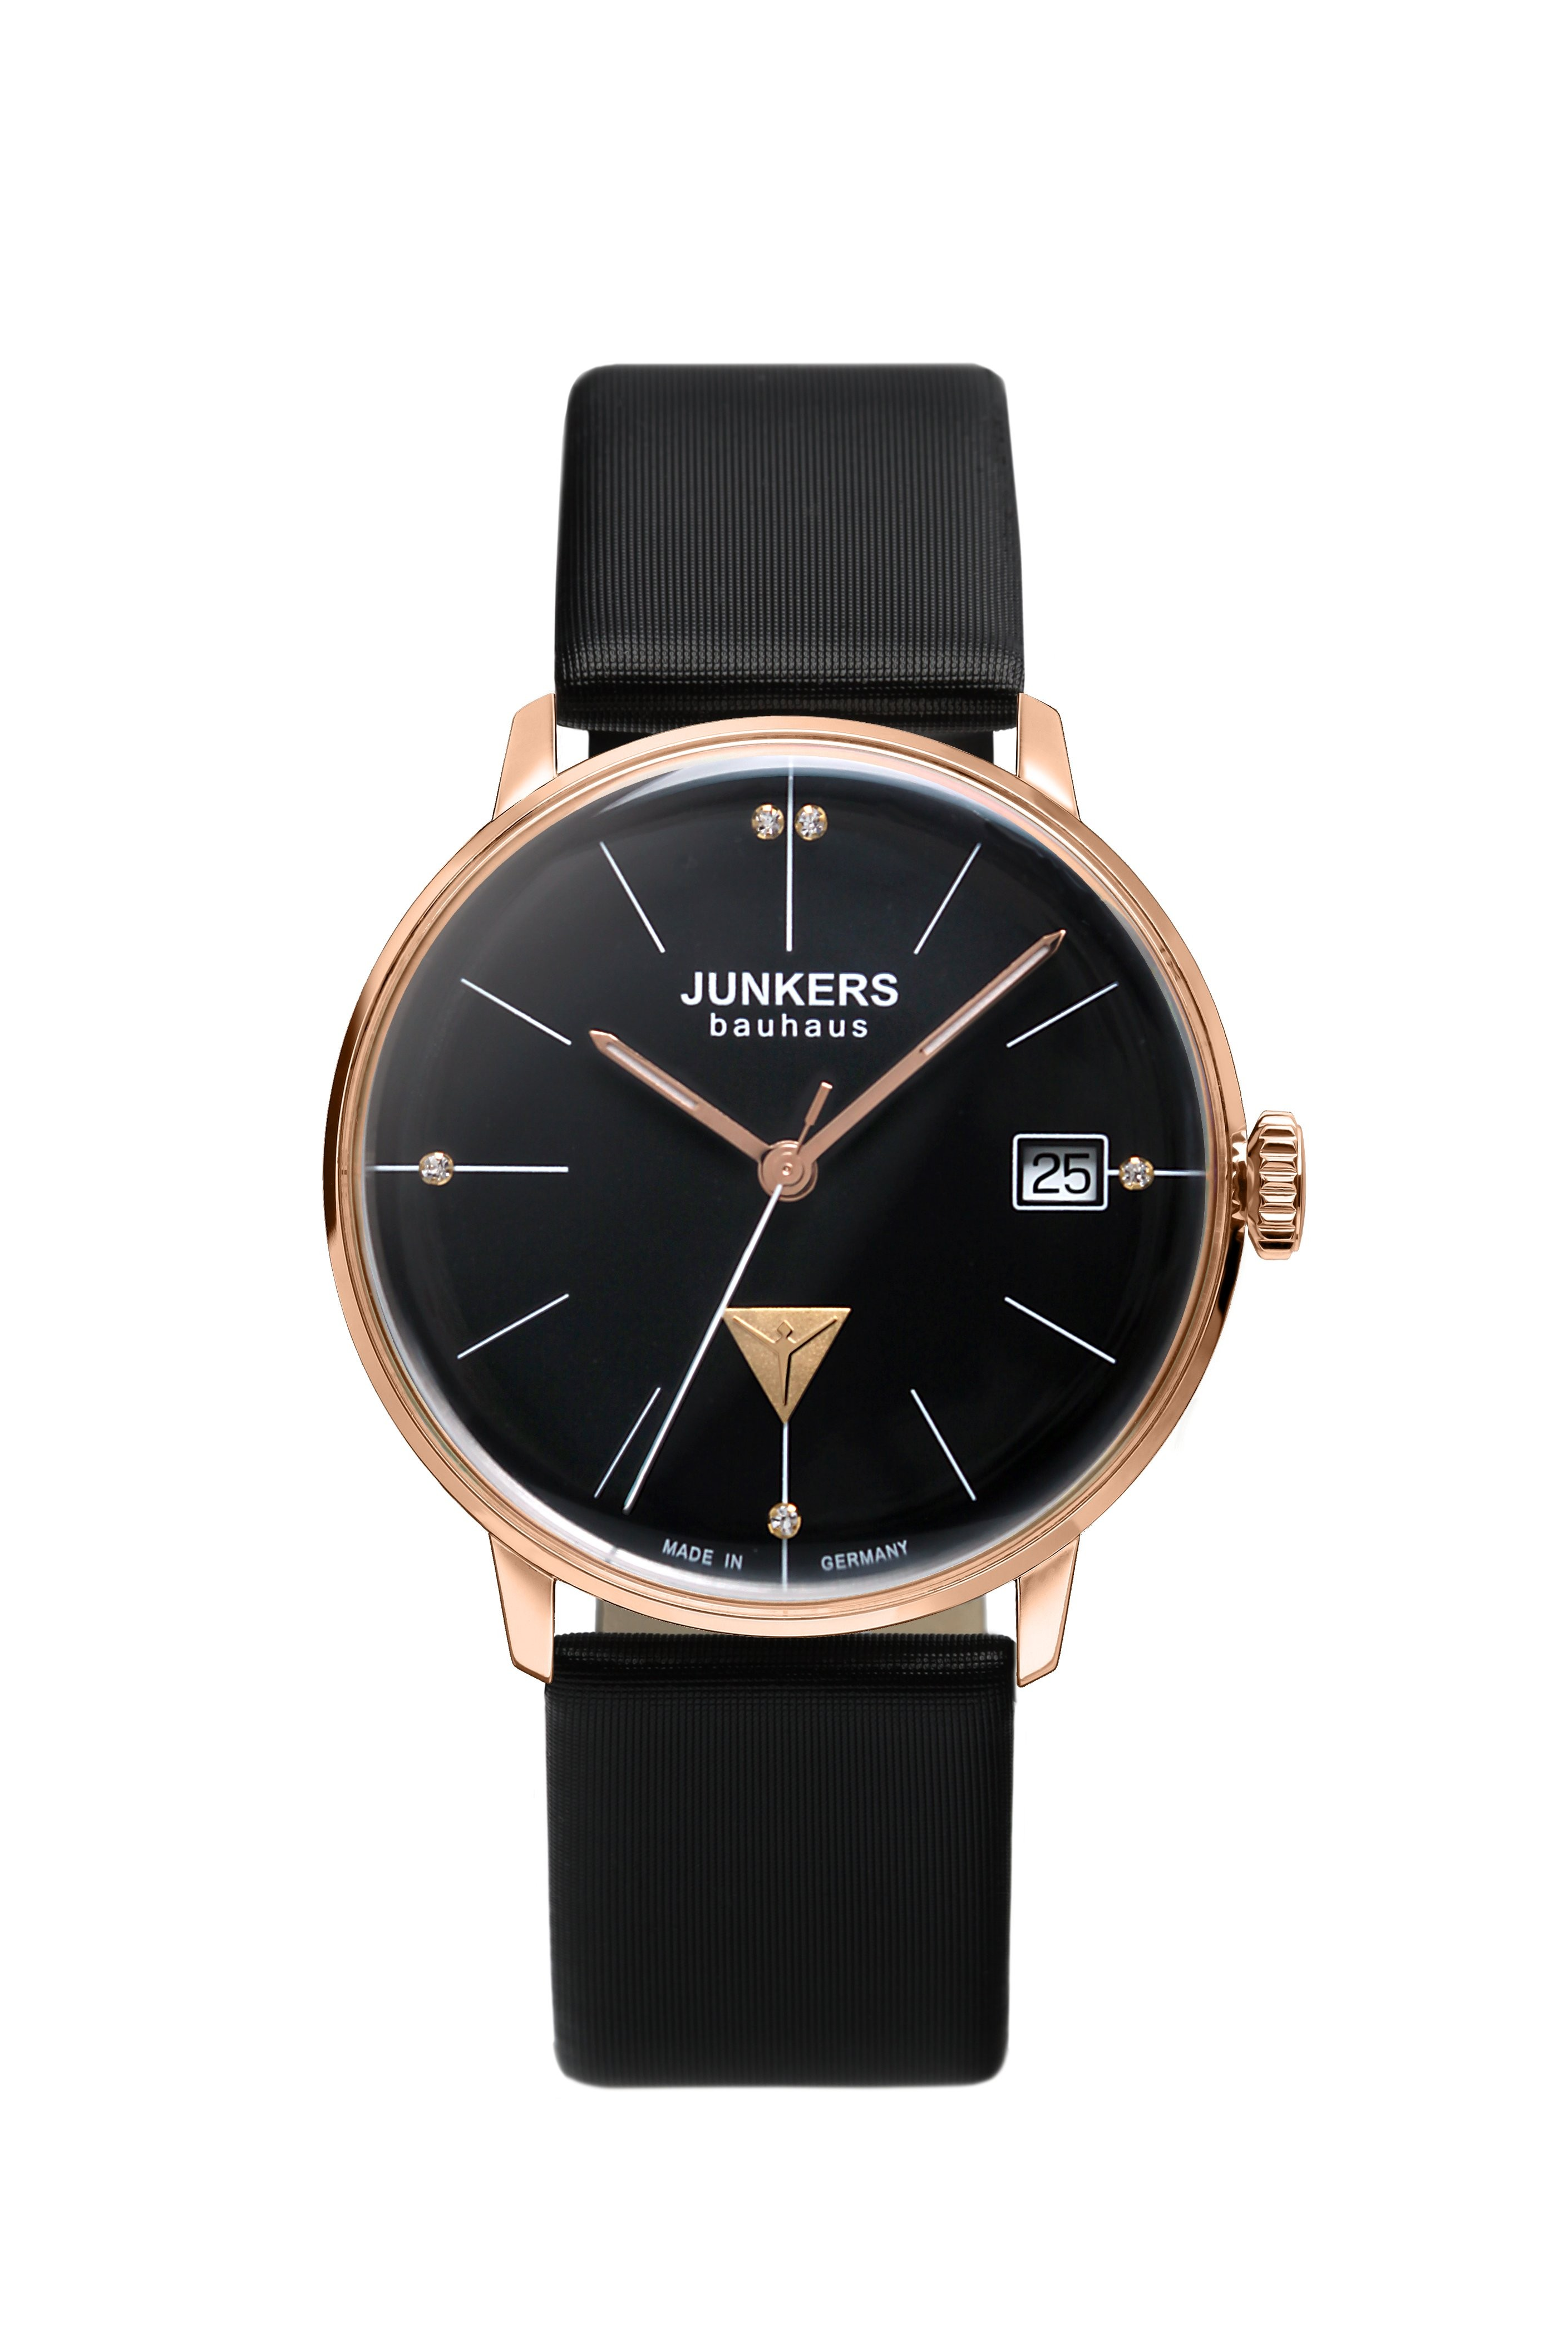 JUNKERS BAUHAUS LADY SWISS QUARTZ WATCH ROSE GOLD CASE BLACK DIAL 6075-2